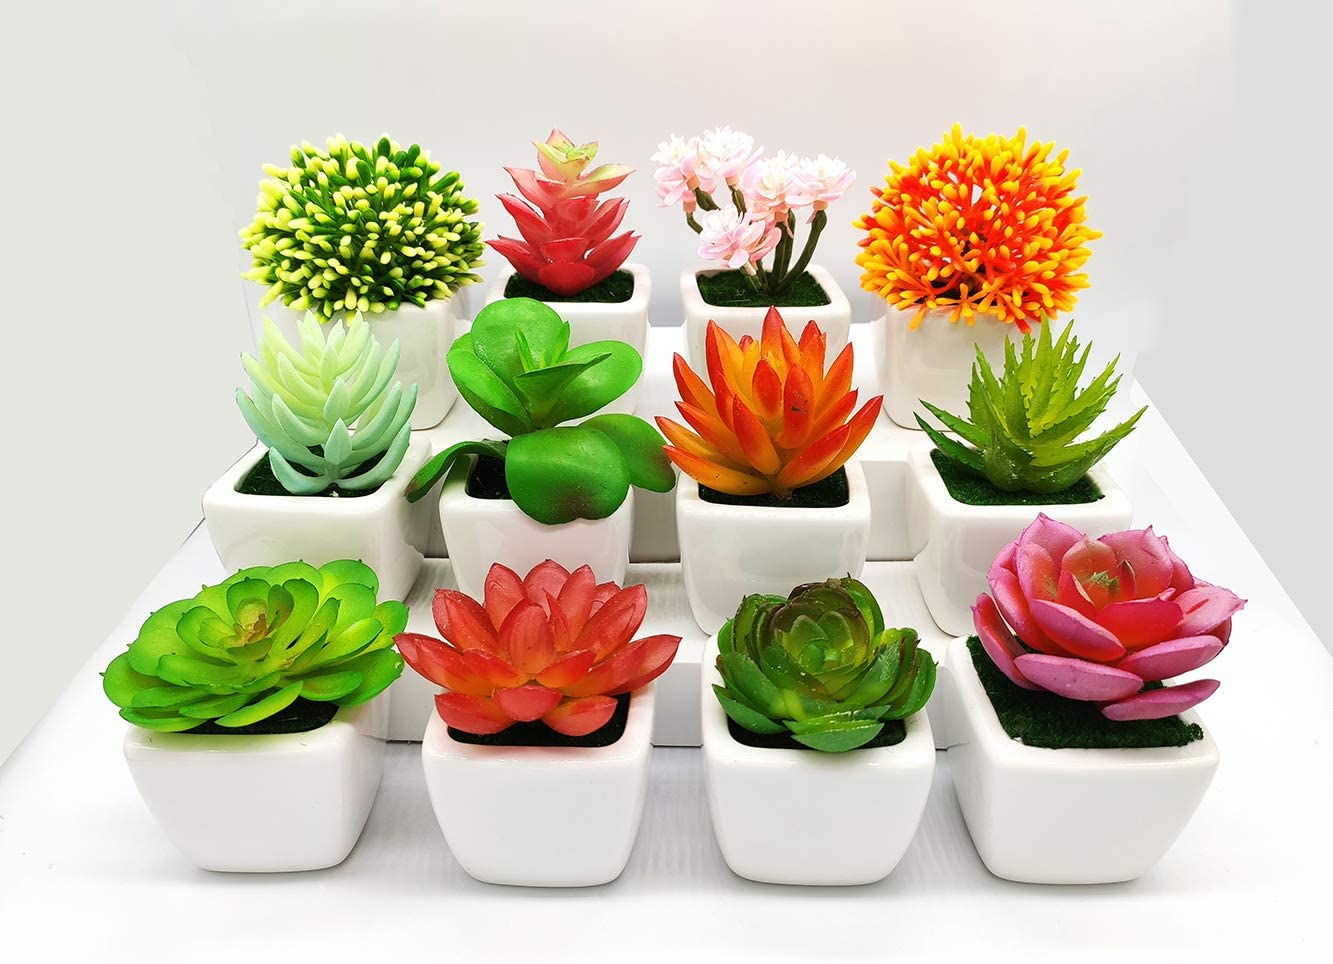 FLYYQMIAO Artificial Succulent Plants Fake Succulents Small Plants in White Ceramic Potted for Indoor Decor Office Room Desk Decoration 12 Pots